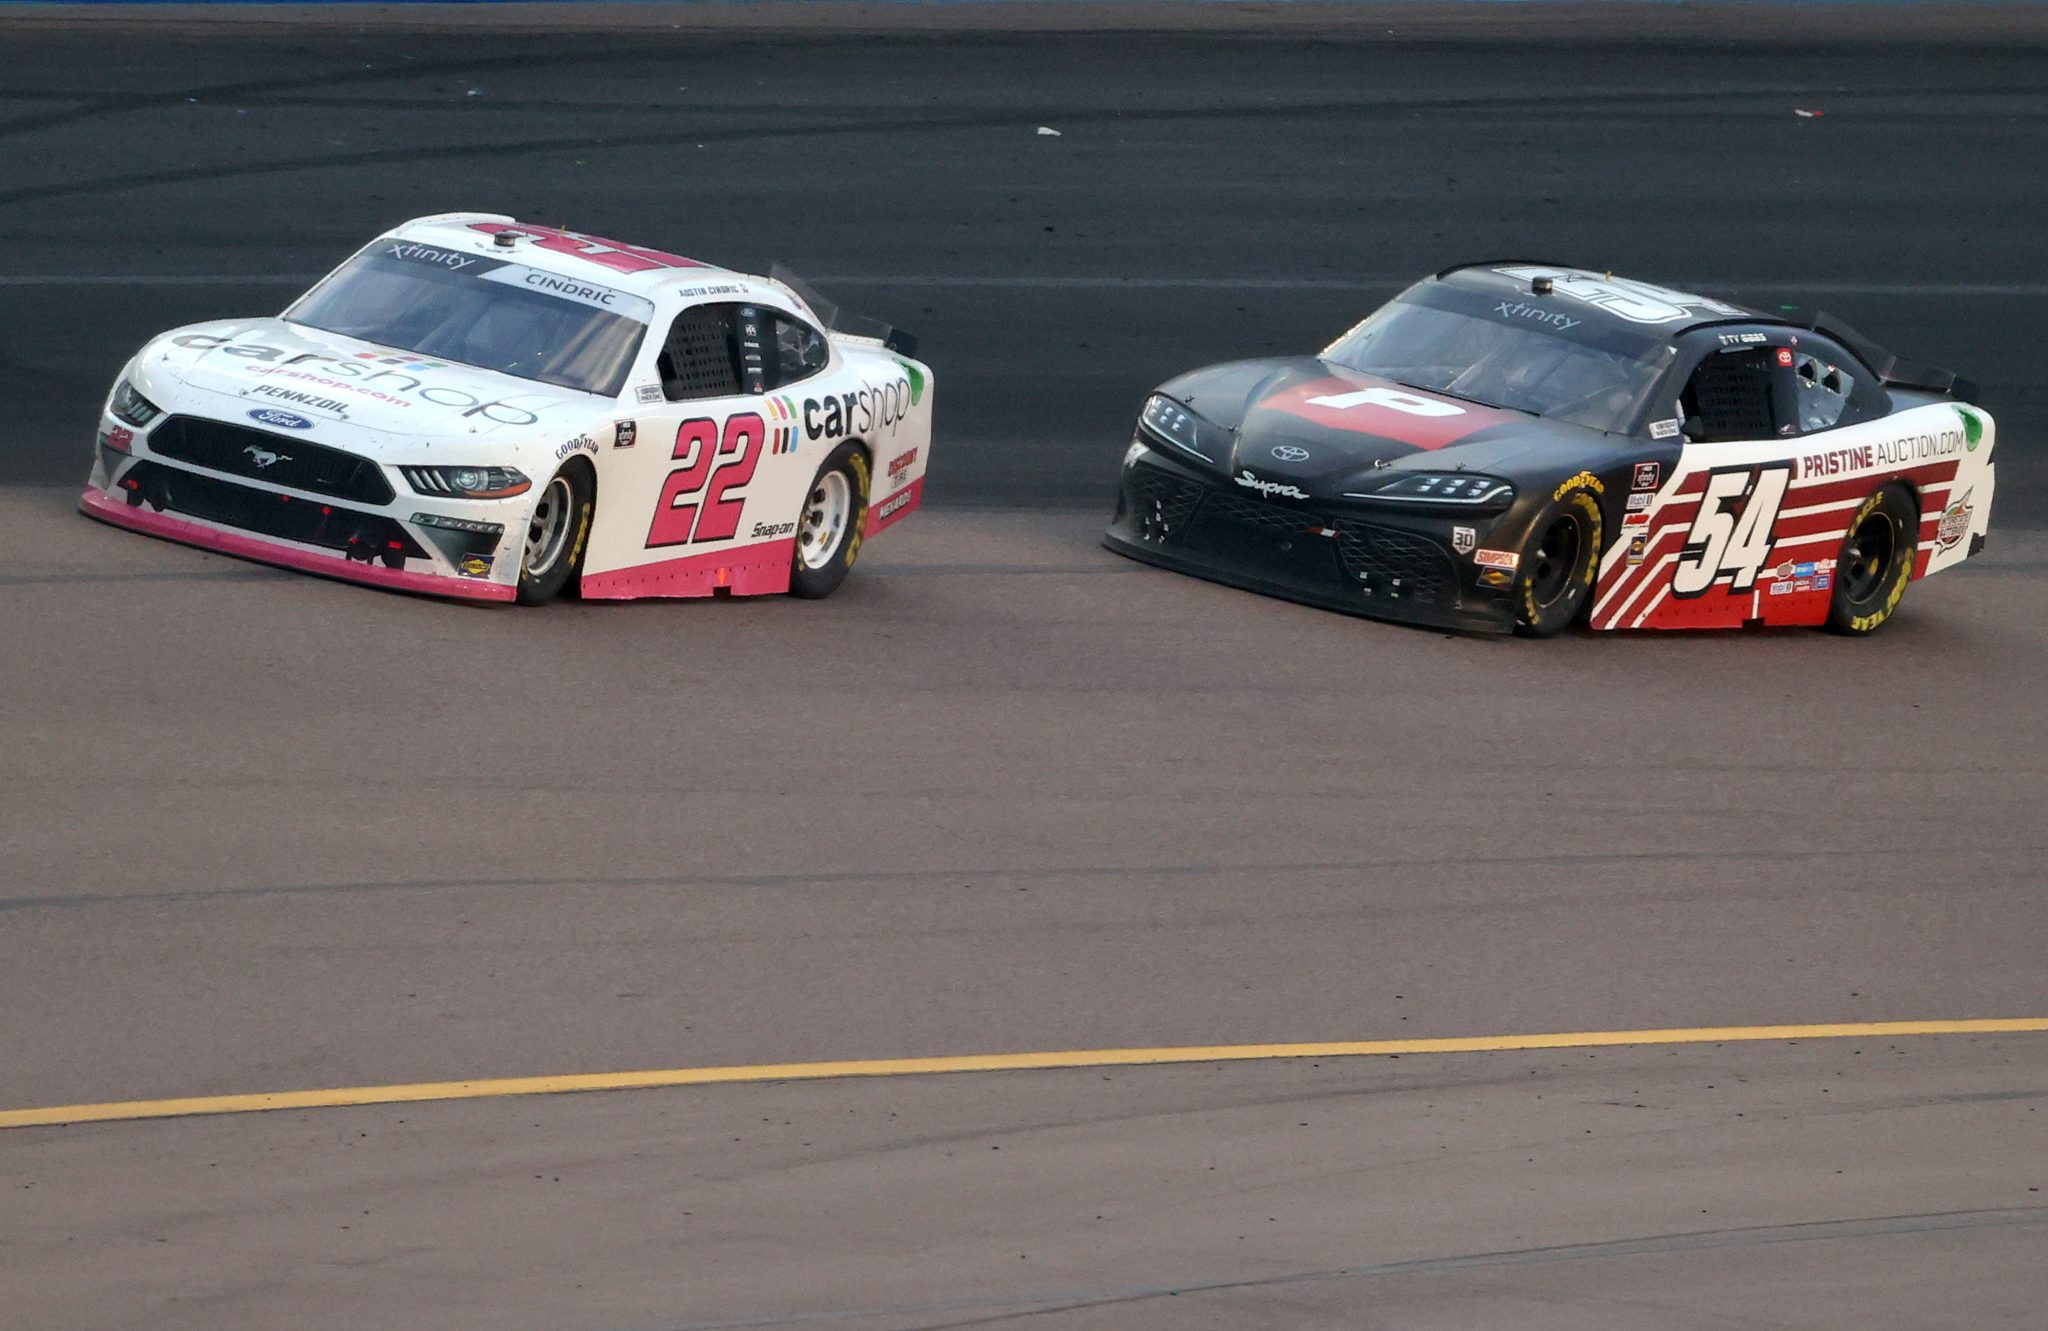 AVONDALE, ARIZONA - MARCH 13: Austin Cindric, driver of the #22 Car Shop Ford, and Ty Gibbs, driver of the #54 PristineAuction.com Toyota, race during the NASCAR Xfinity Series Call 811 Before You Dig 200 presented by Arizona 811 at Phoenix Raceway on March 13, 2021 in Avondale, Arizona. (Photo by Abbie Parr/Getty Images) | Getty Images